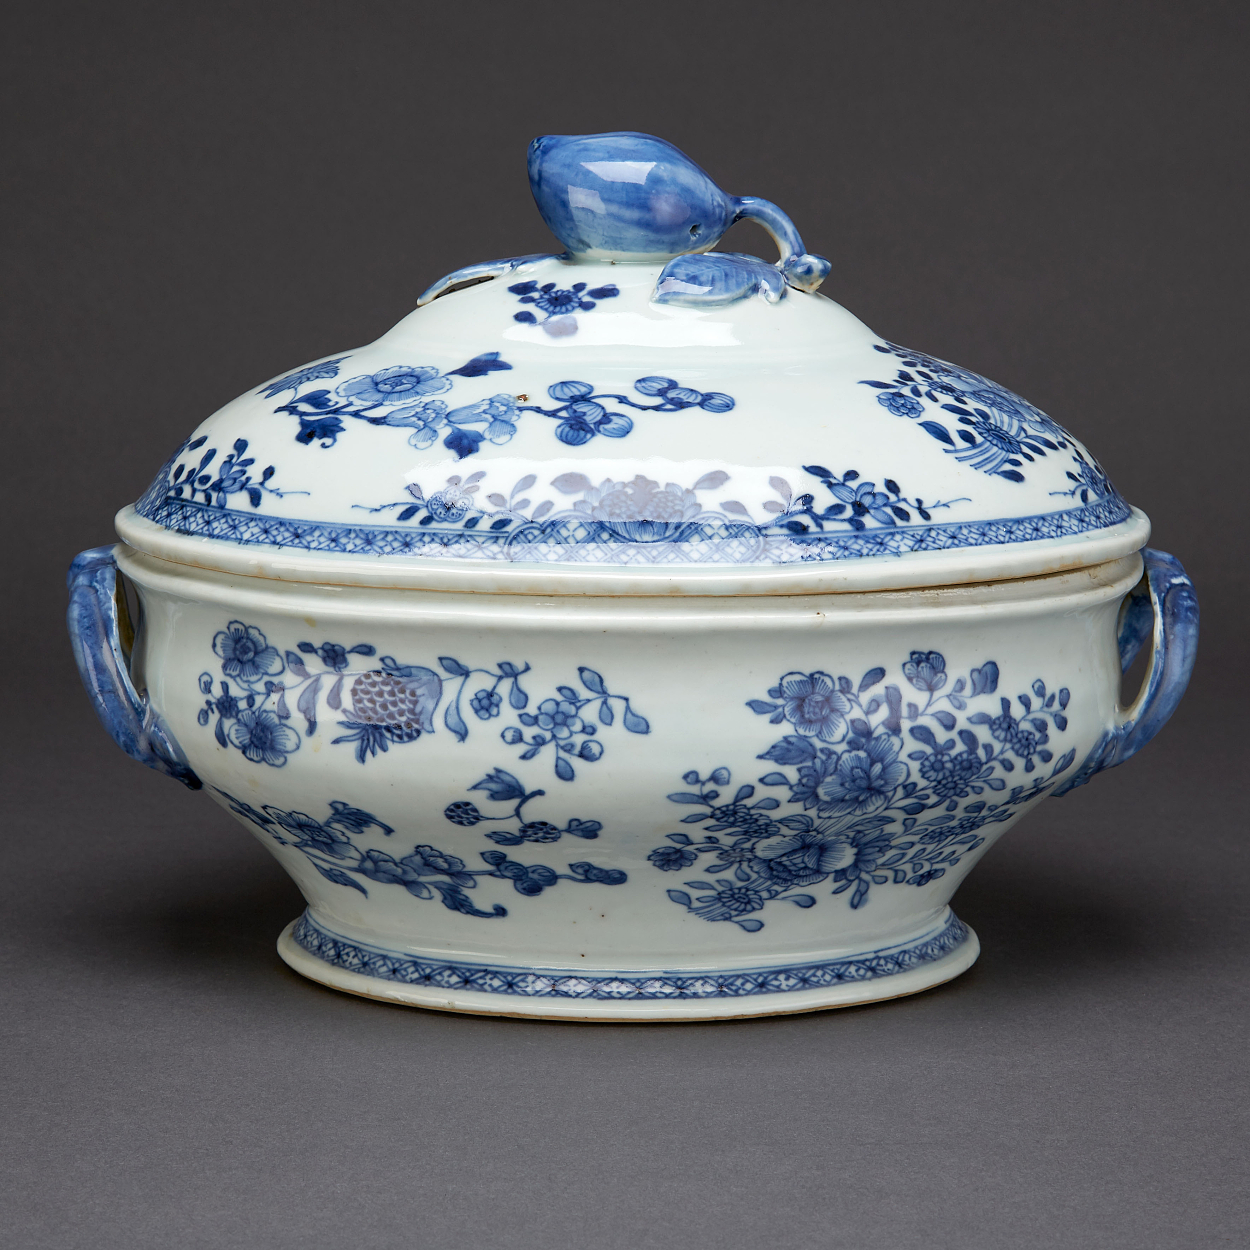 A Blue and White Tureen with Cover